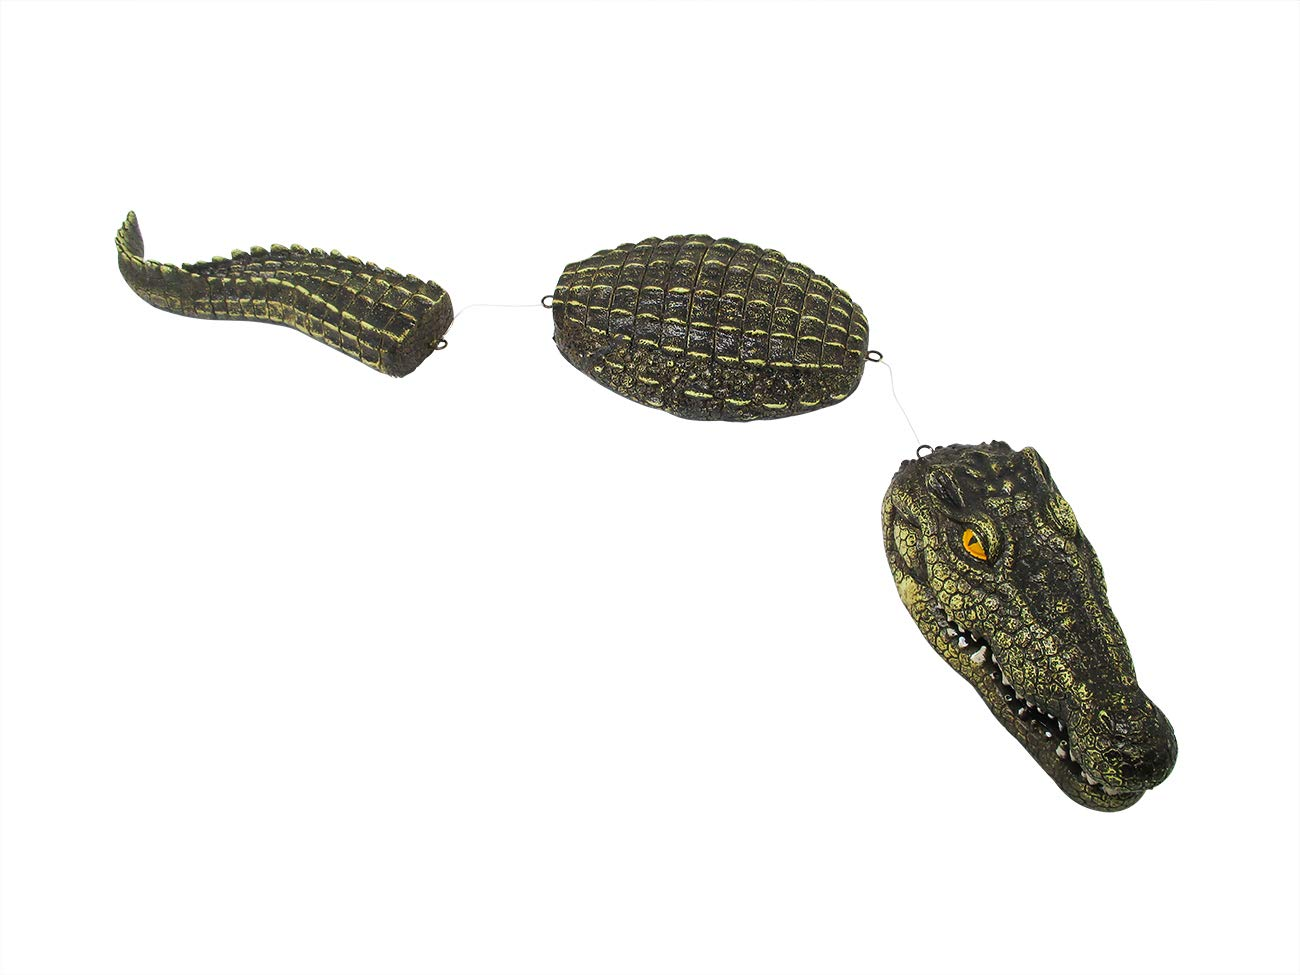 Trademark Innovations 3-Piece Fake Alligator Pool Float Blue Heron Decoy for Ponds, and Water Features